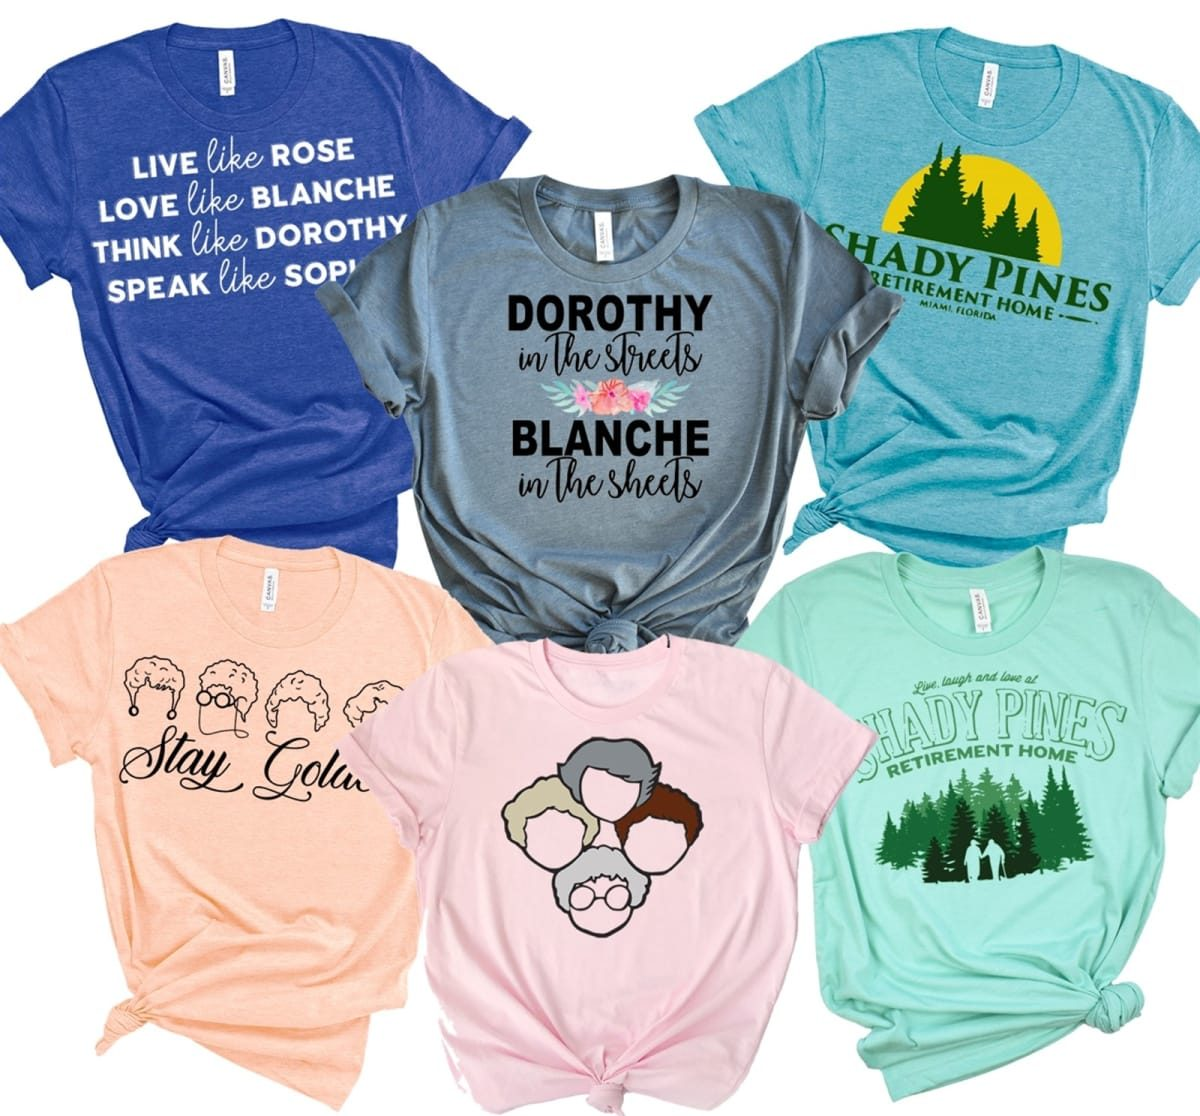 golden girls womens tees in many colors